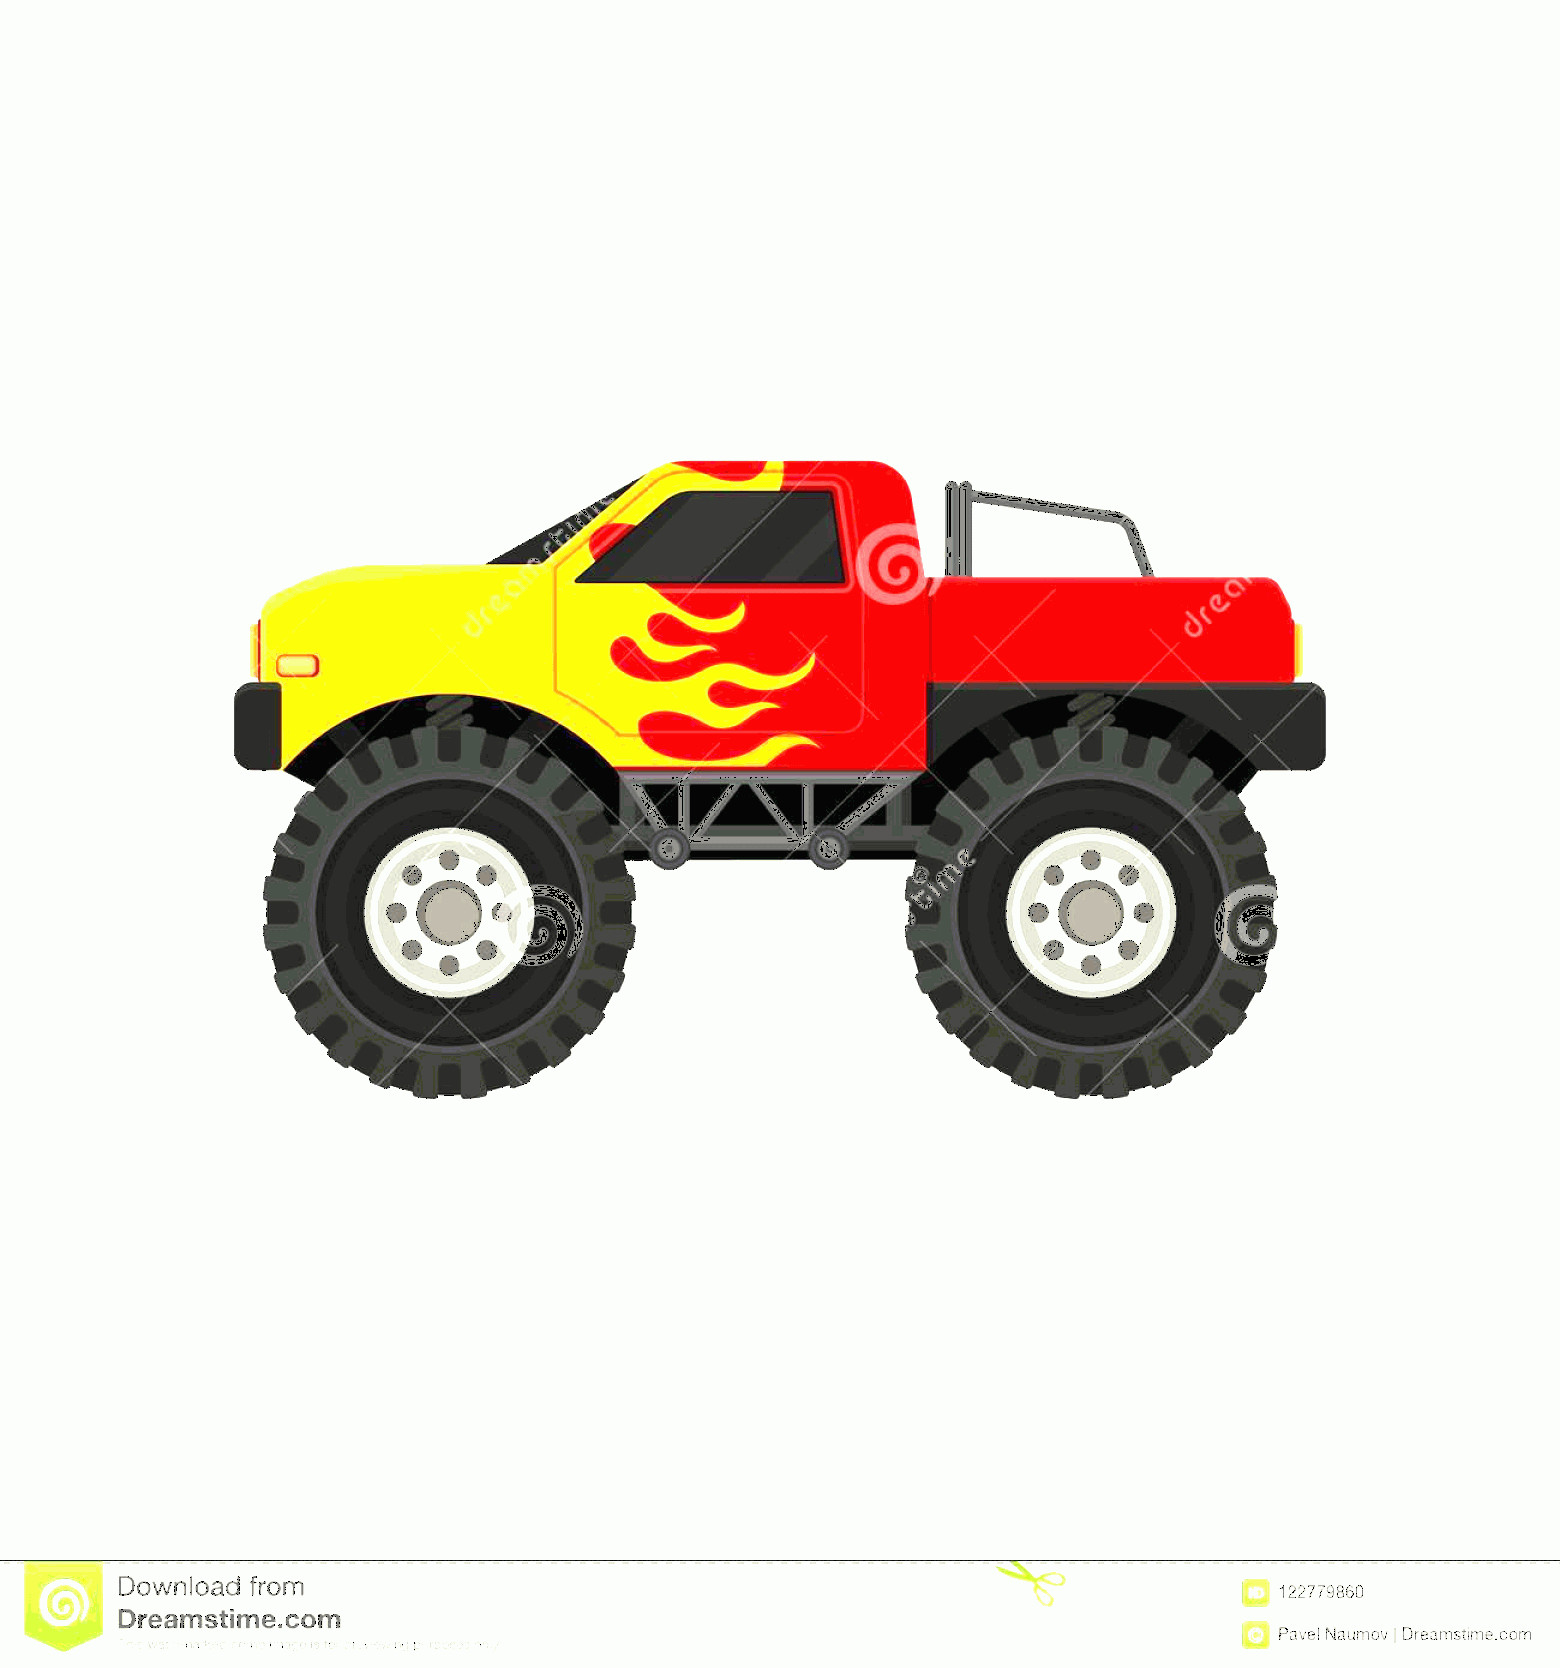 Monster Truck Tires Vector: Bright Red Monster Truck Yellow Flame Decal Heave Car Large Tires Black Tinted Windows Automobile Theme Cartoon Style Image